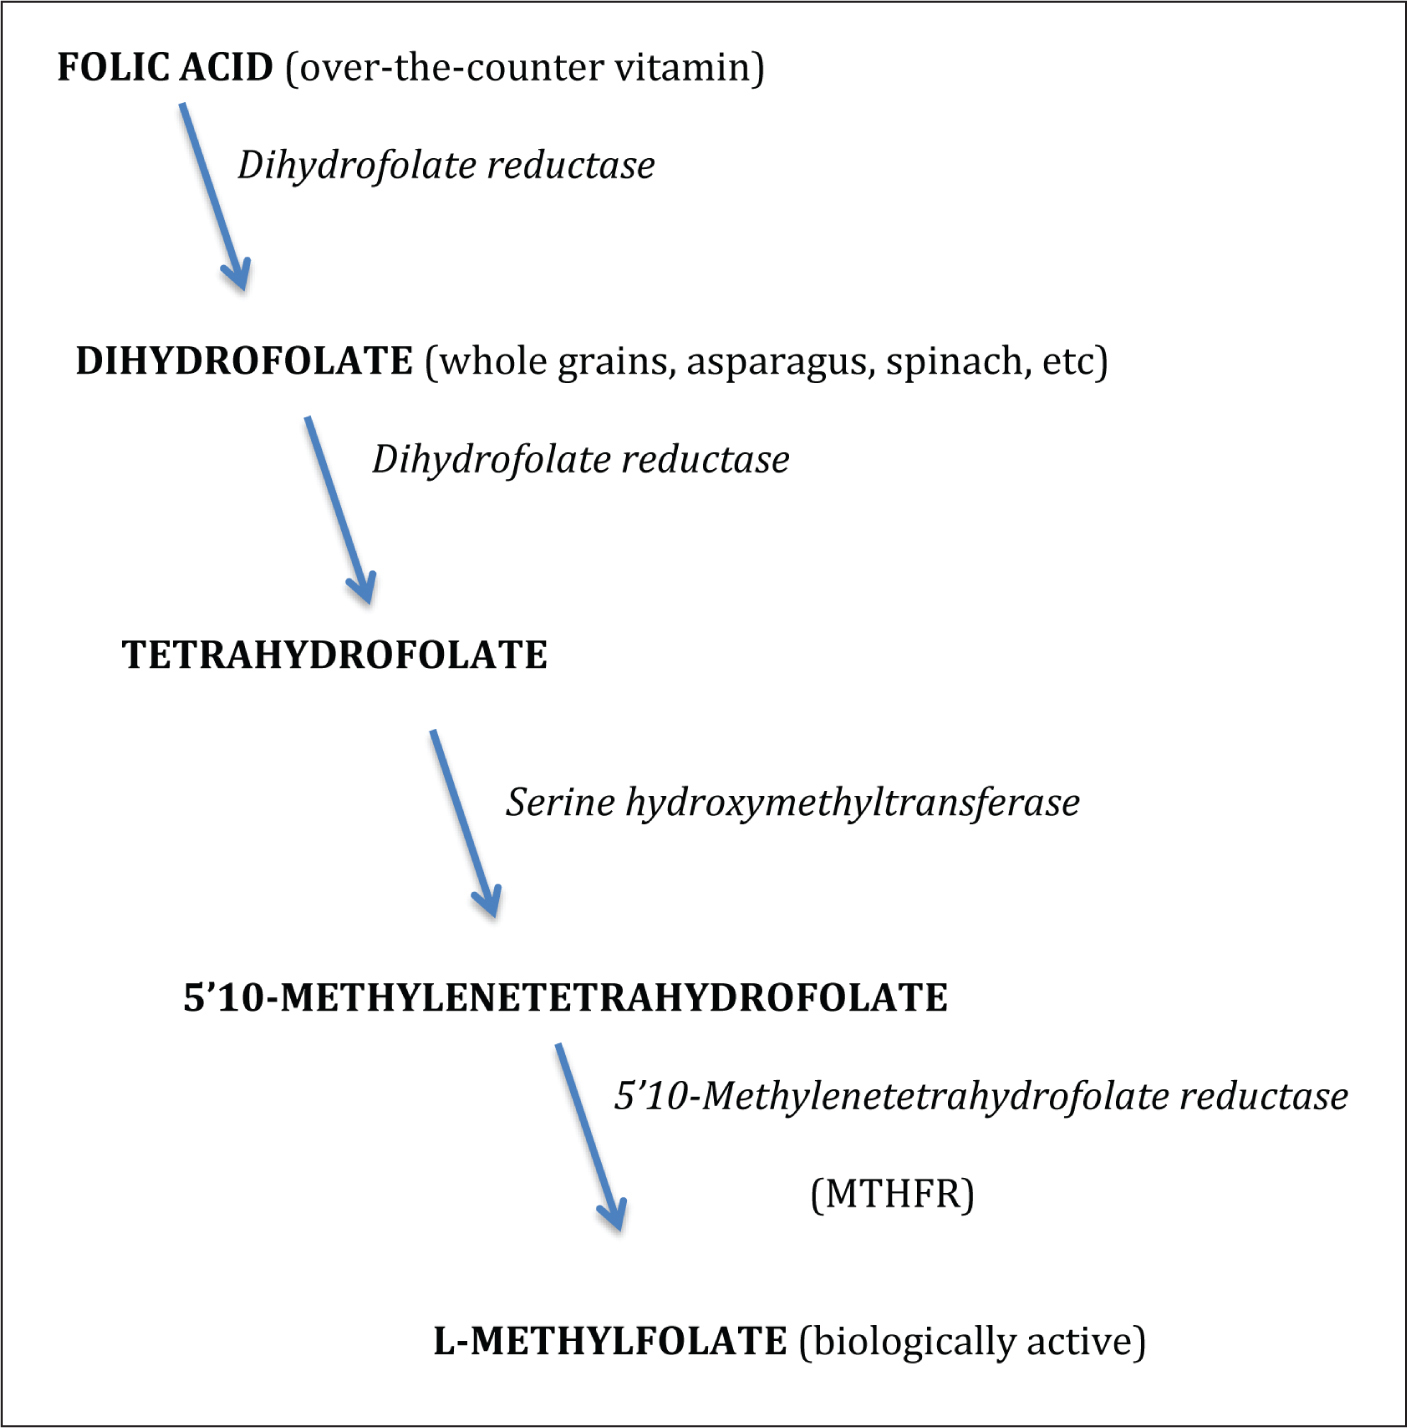 Enzymatic reactions that convert the biologically inactive folic acid or dihydrofolate to the usable, biologically active L-methylfolate.Image courtesy of Pat Rabjohn, MD, PhD.